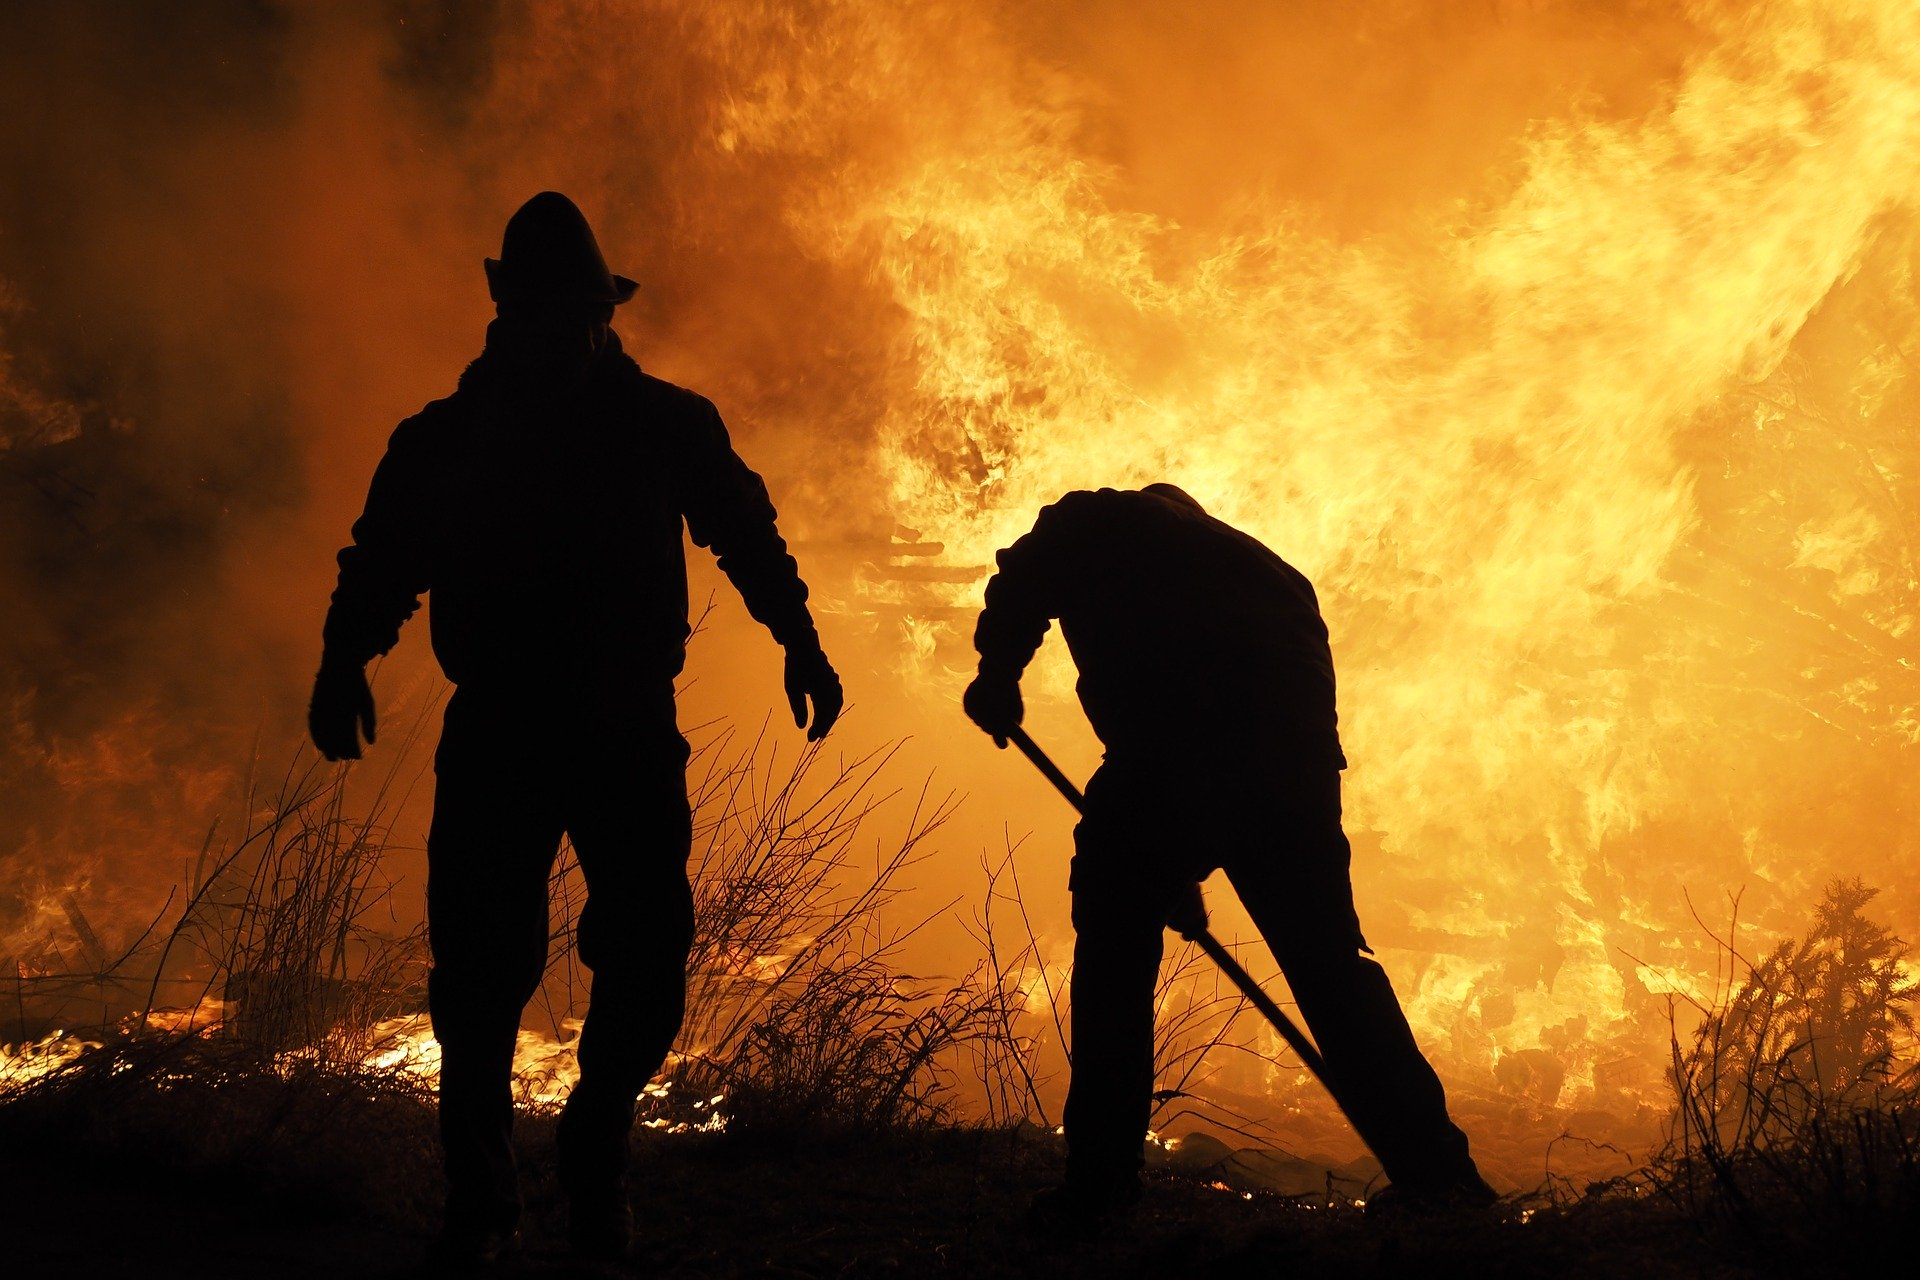 Fire fighters extinguishing wildfire